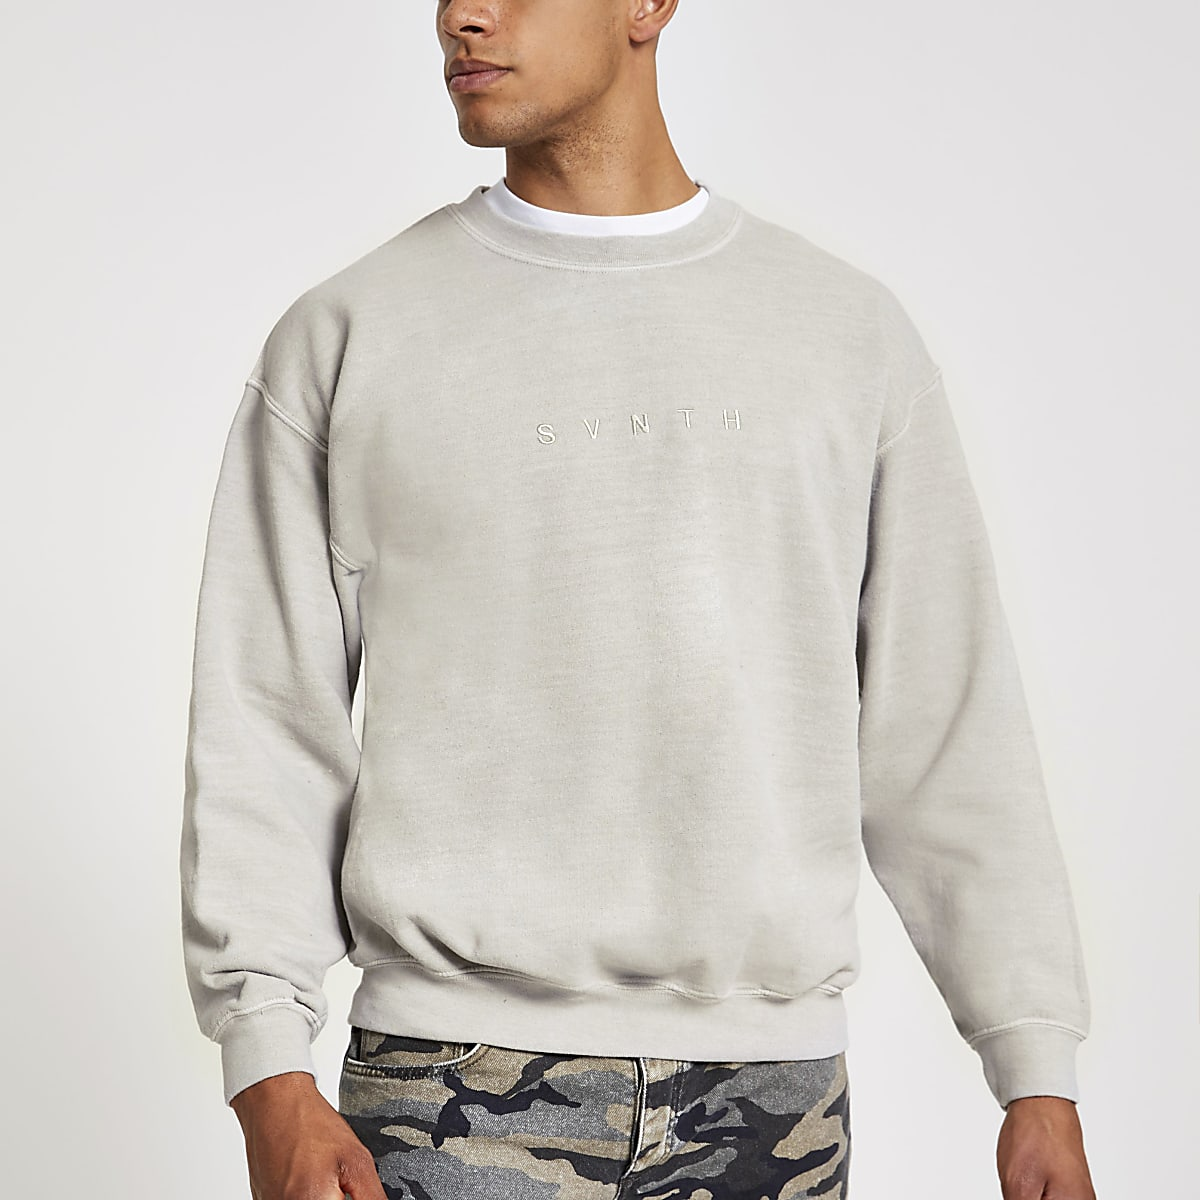 Light grey Svnth embroidered sweatshirt